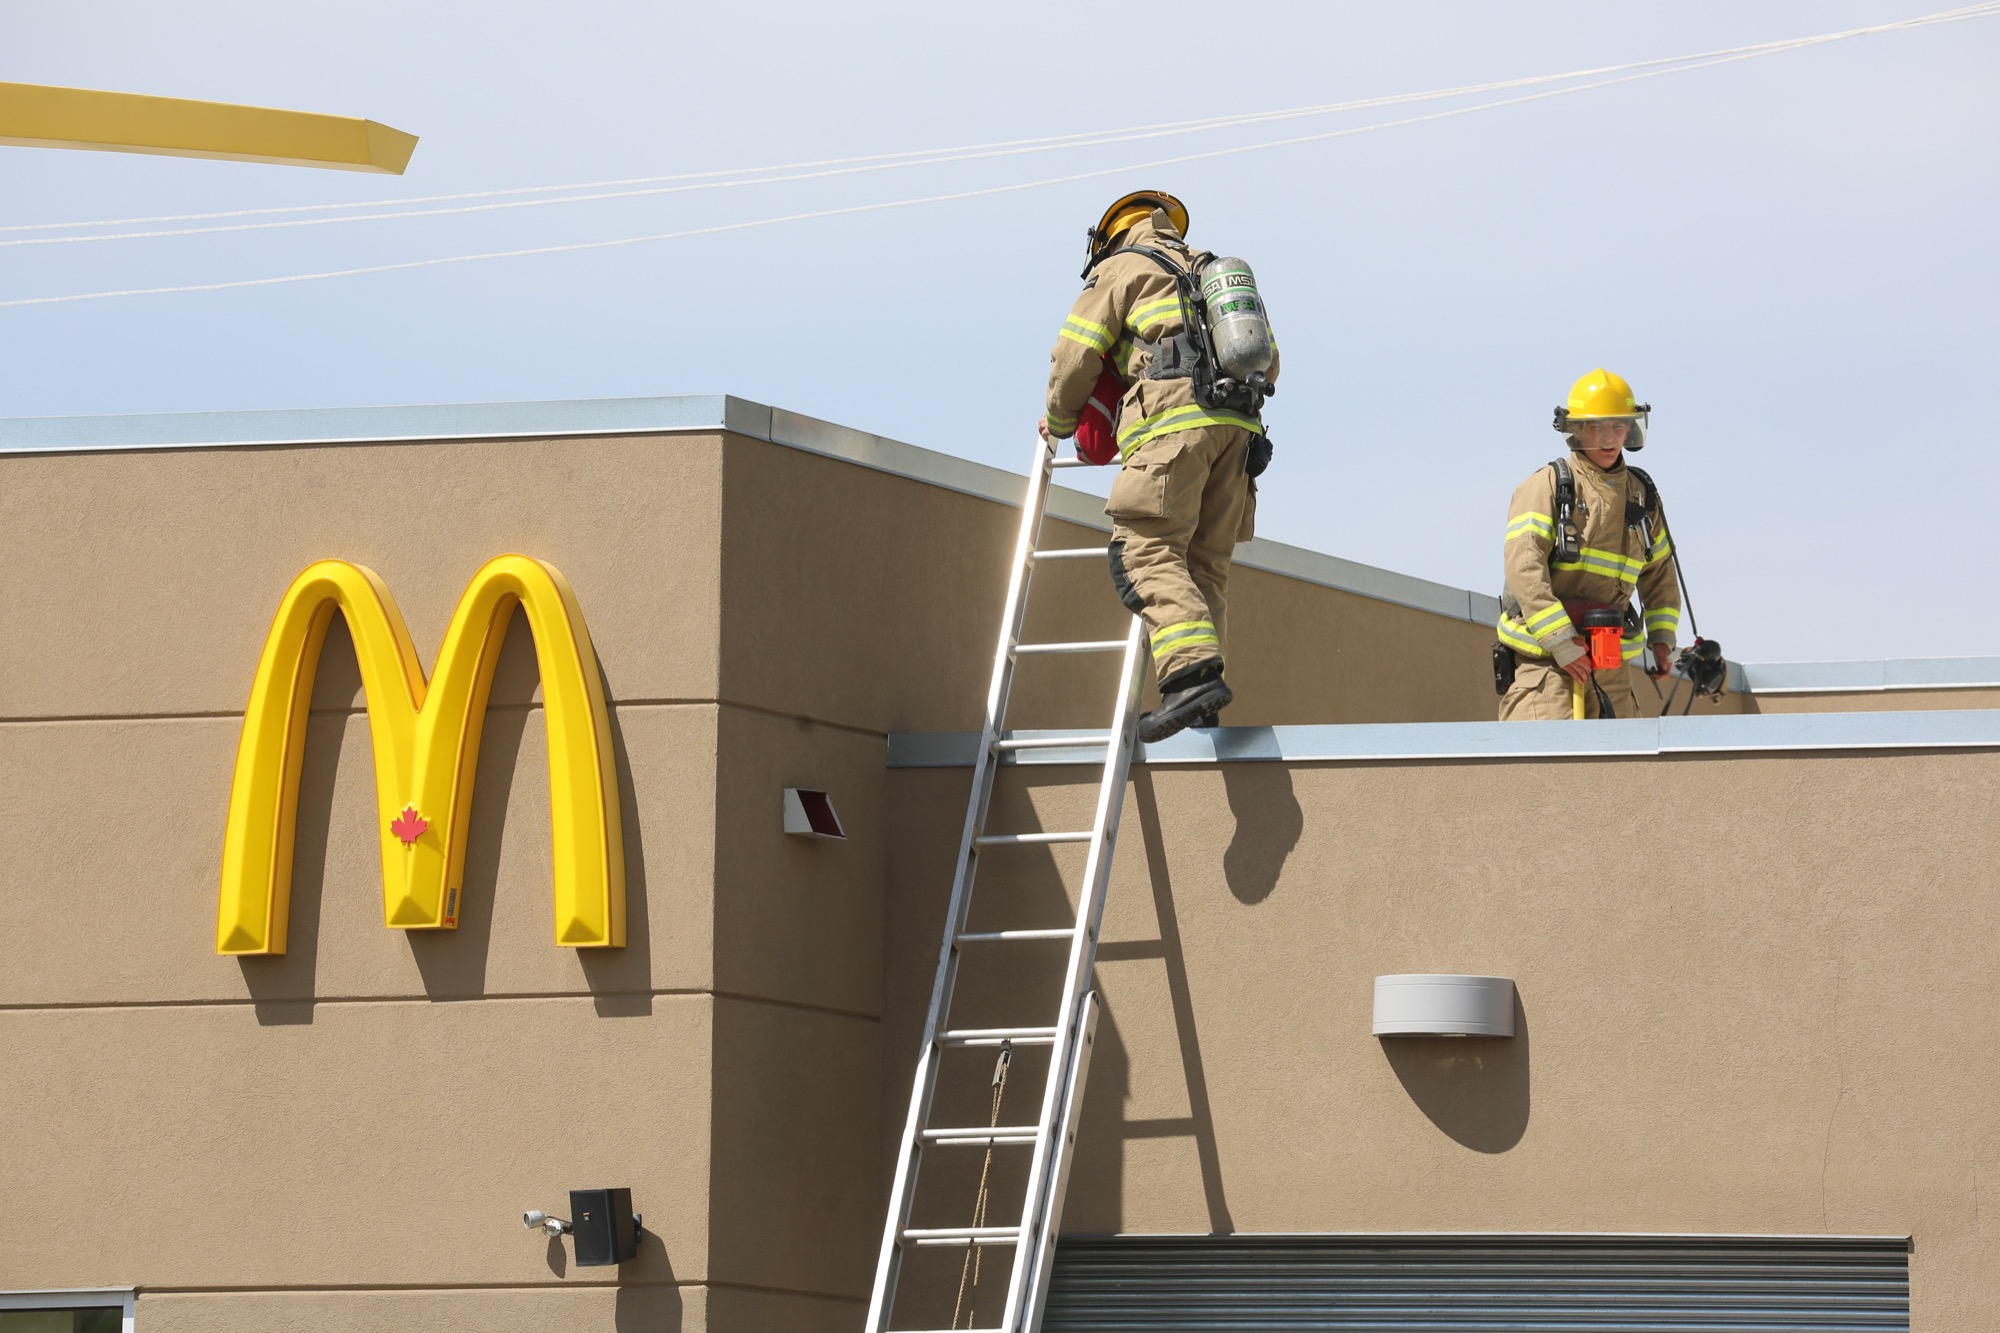 FIrefighters inspect the roof of the McDonald's location at 2626 Victoria Avenue after a kitchen fire. A spokesperson from McDonald's said that no one was hurt and that the damage was not excessive.